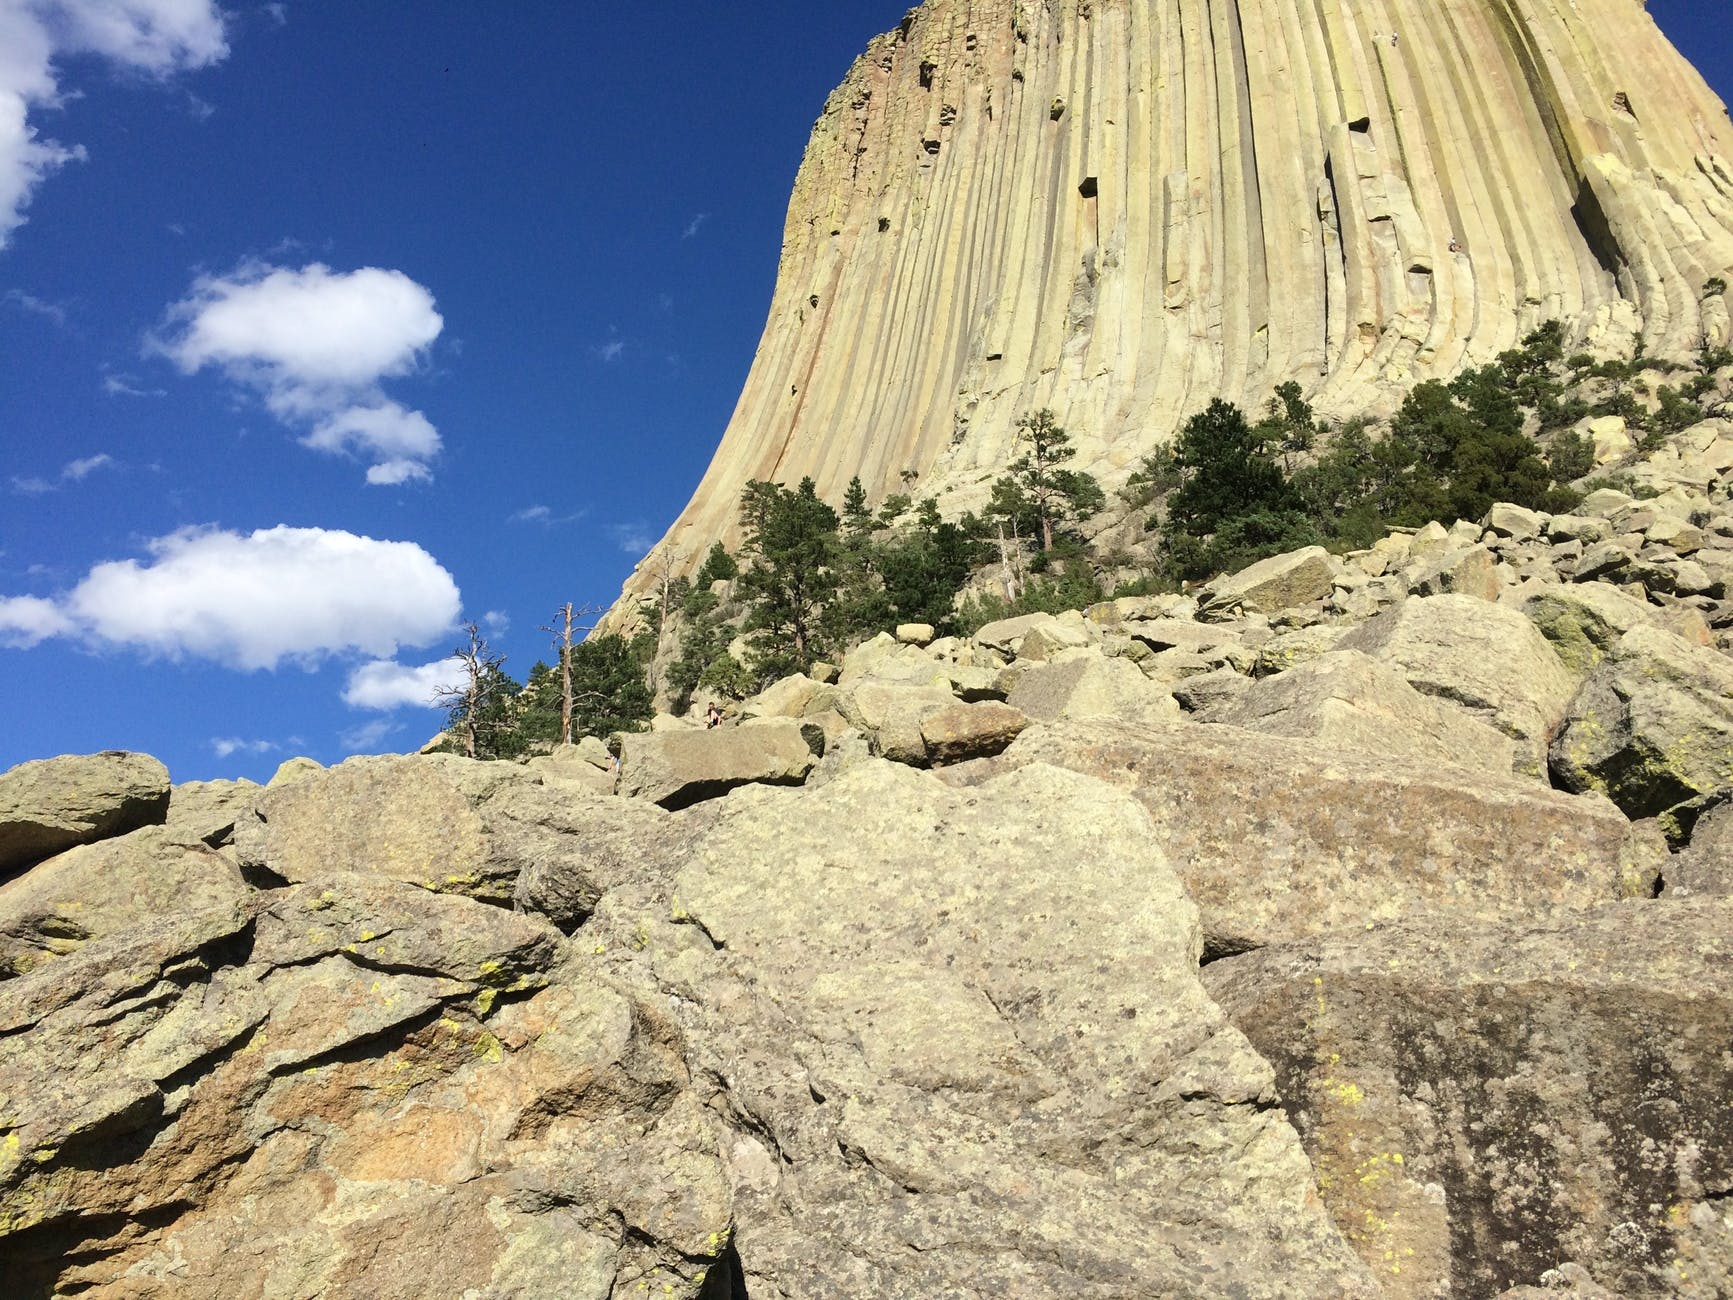 devils tower christian single women Devil's tower climbing - great site full of useful information, and home to the devil's tower lodge and guiding service a fantastic place to stay just minutes from the climbing a fantastic place to stay just minutes from the climbing.